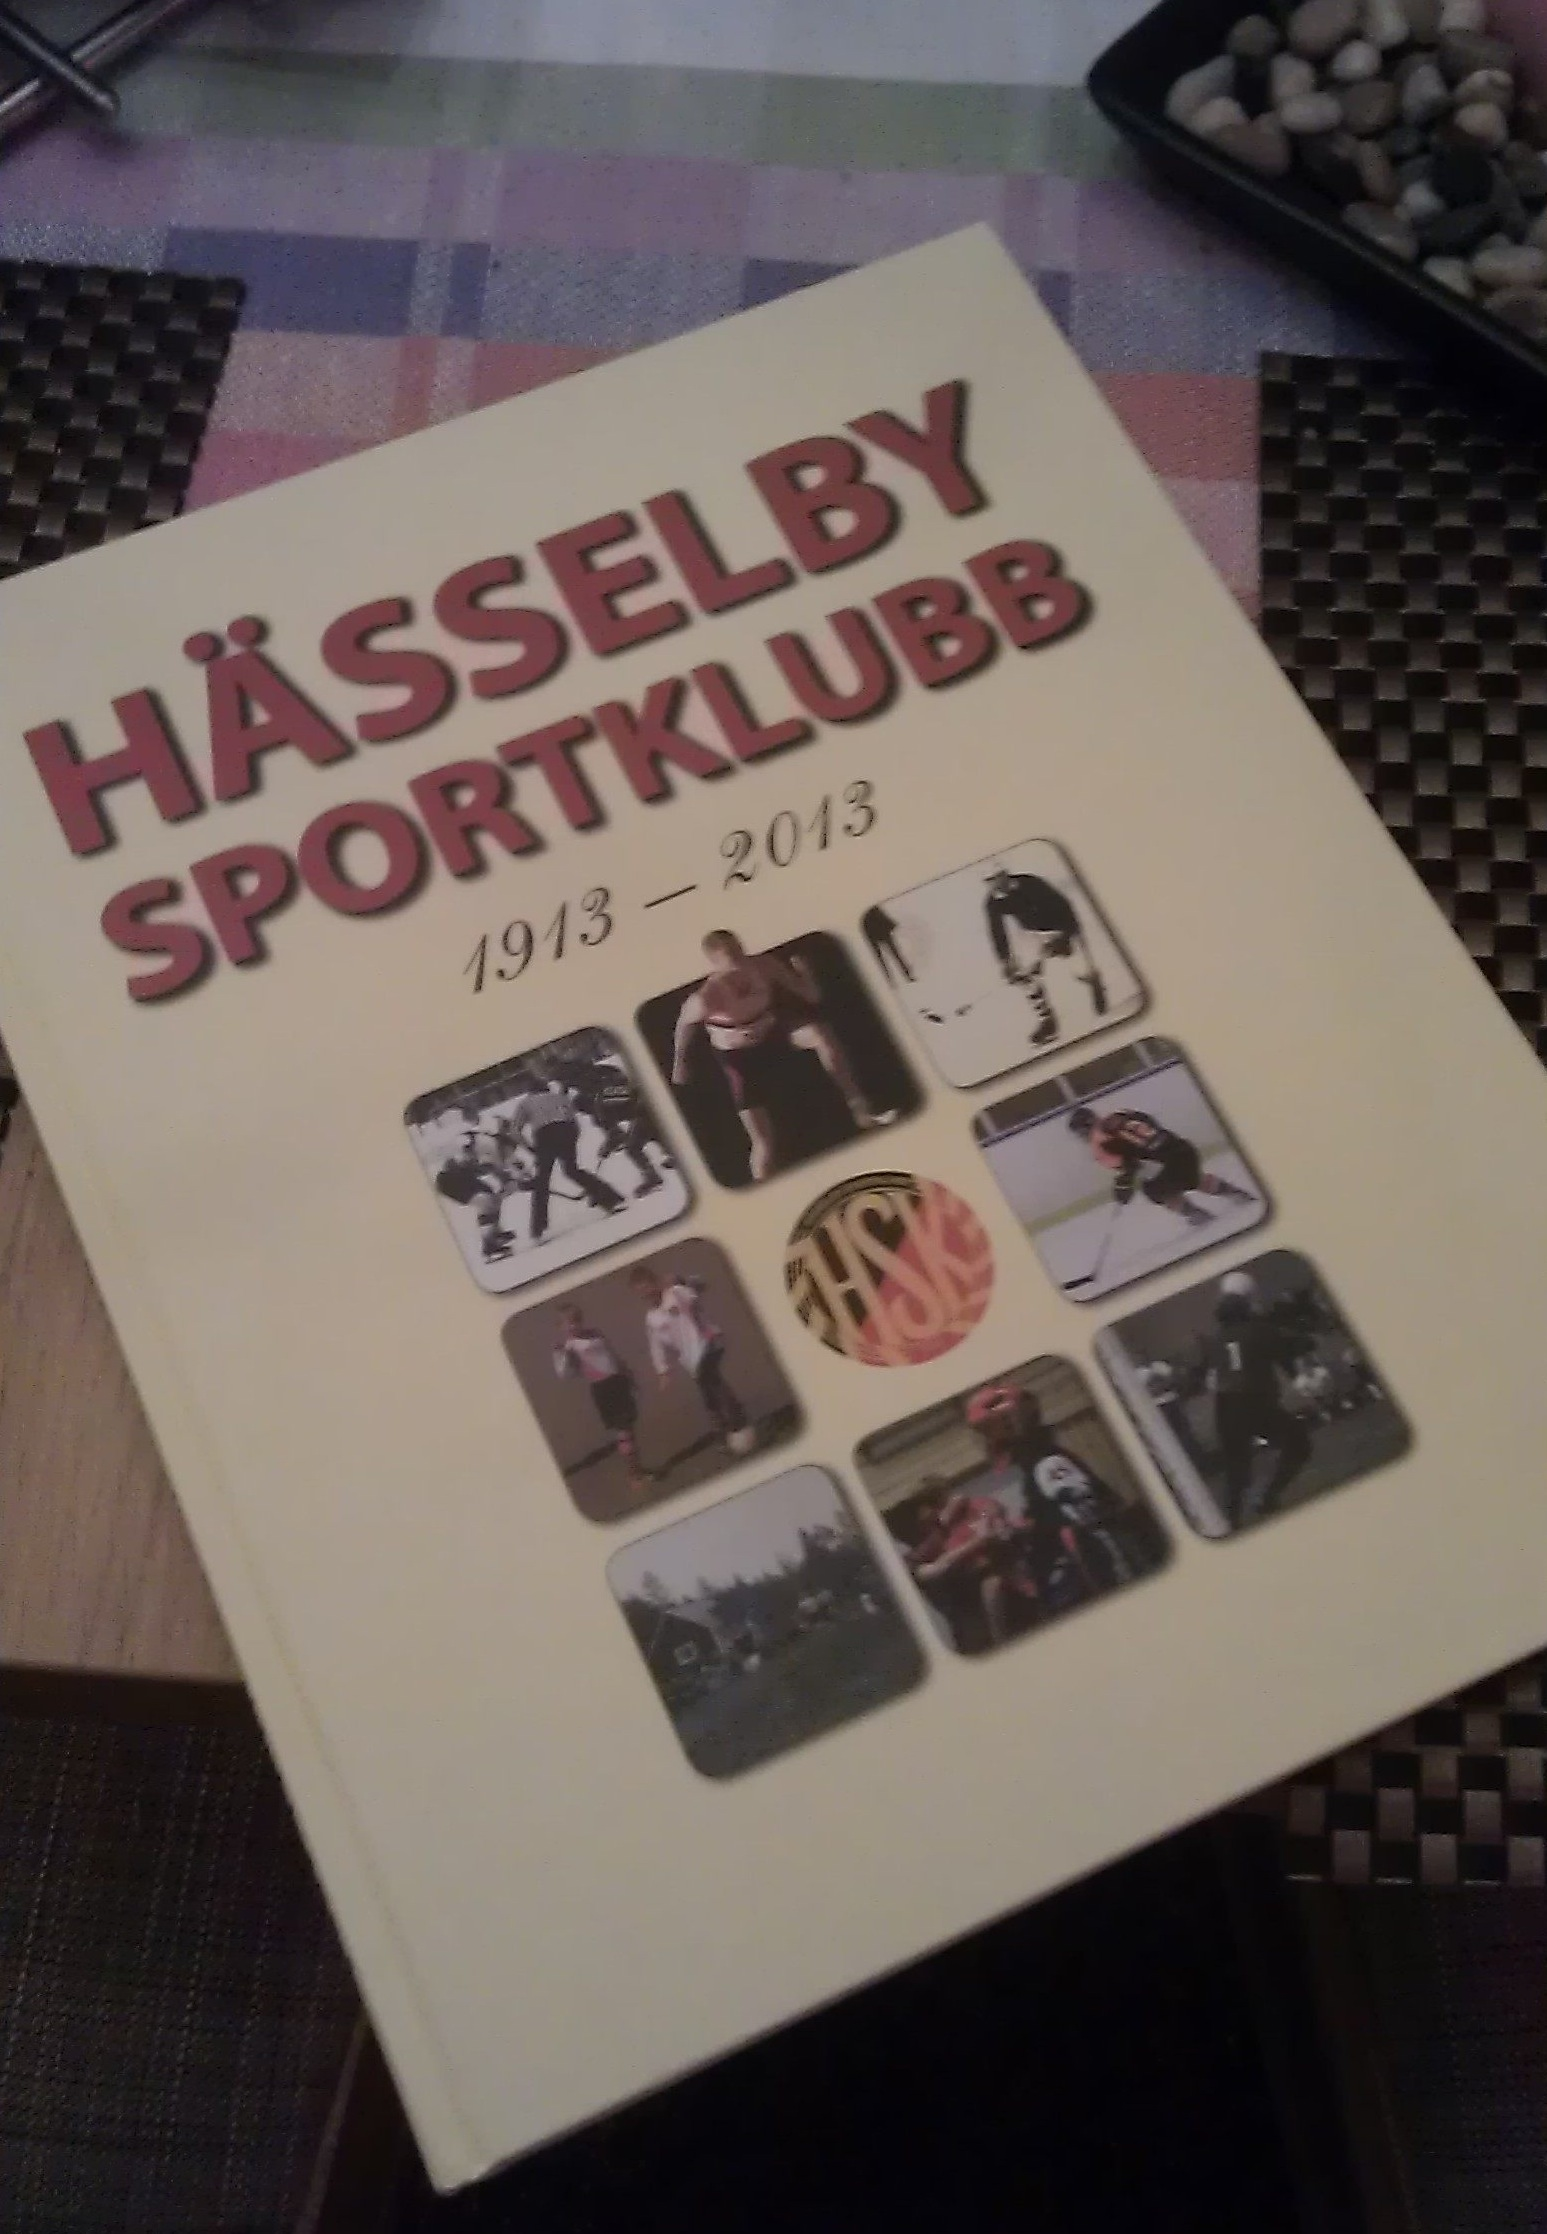 hasselby